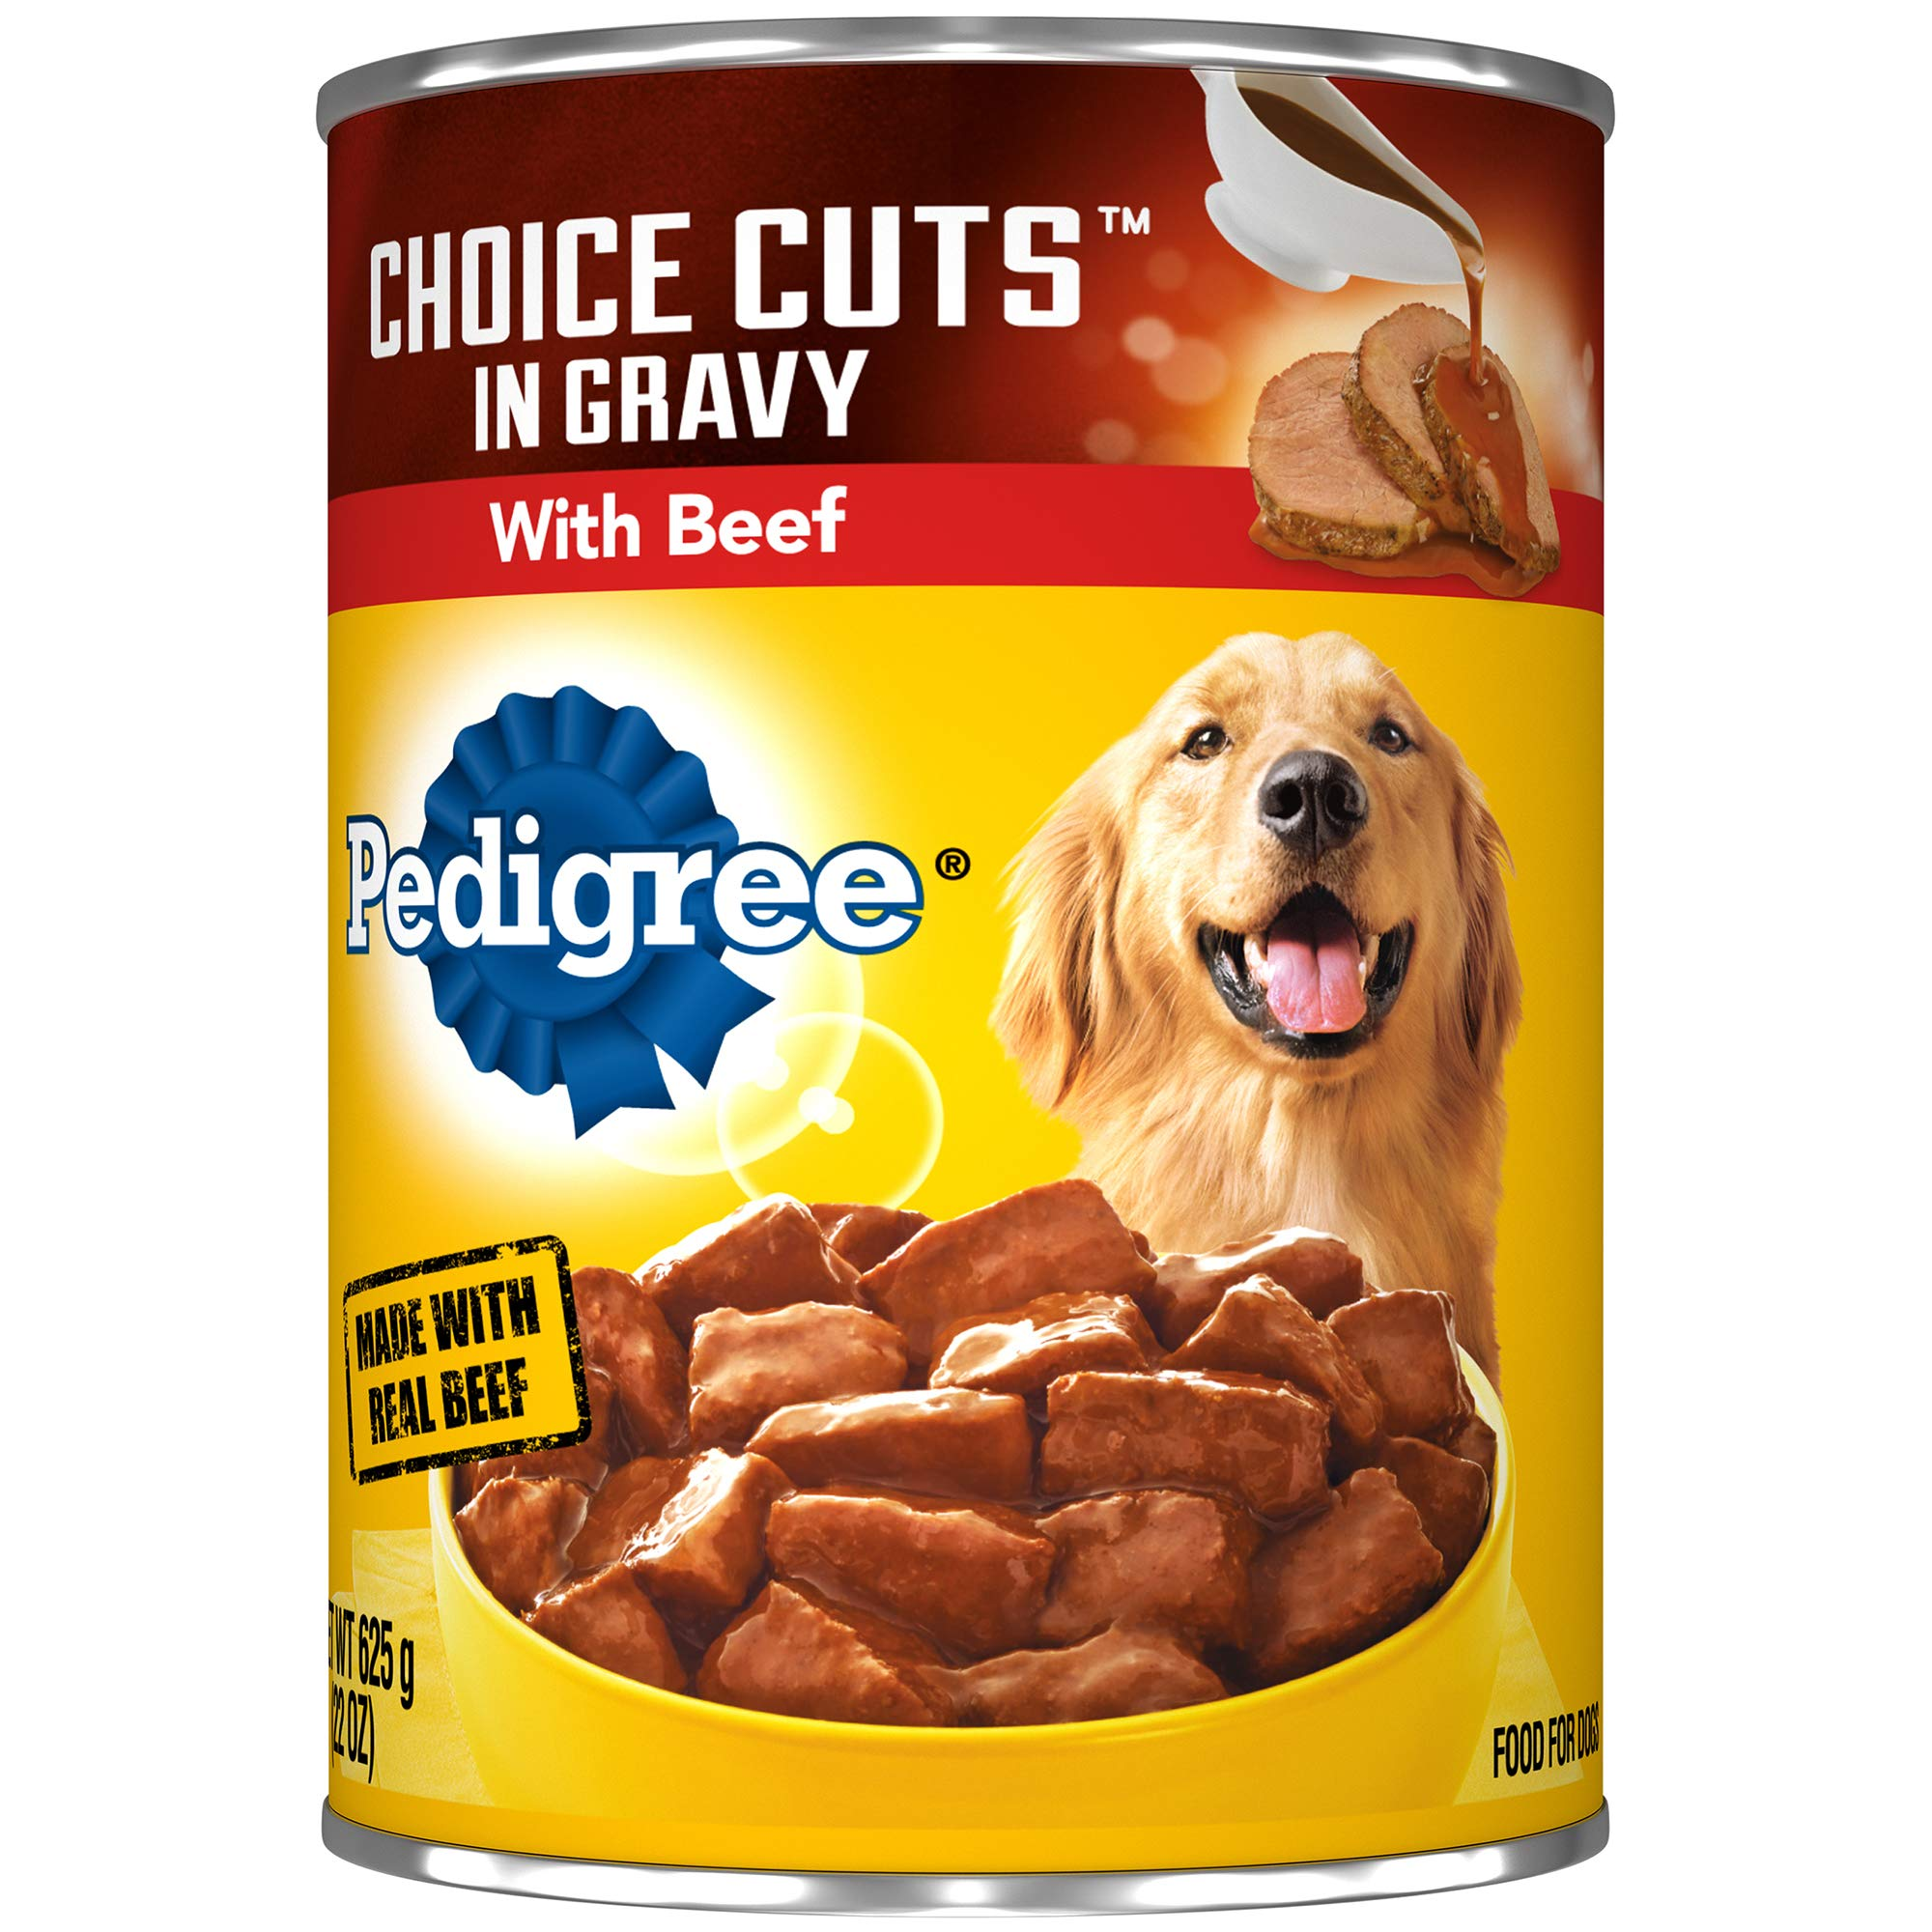 Pedigree Choice Cuts In Gravy With Beef Adult Canned Wet Dog Food, (12) 22 Oz. Cans by Pedigree